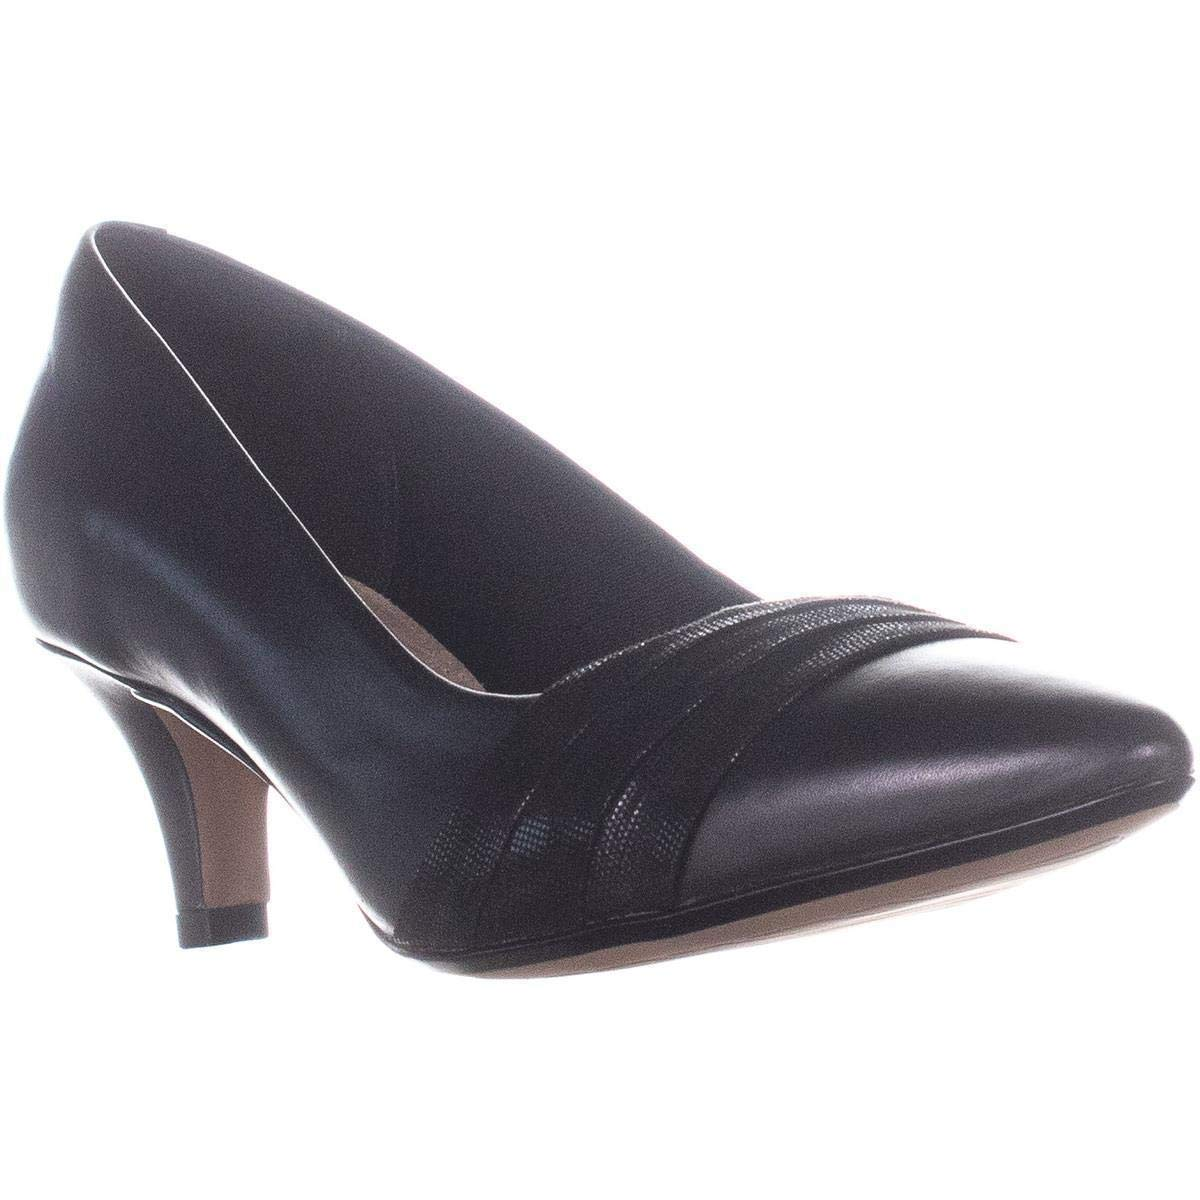 Details about Clarks Womens Linvale Madie Pointed Toe Classic Pumps, Black, Size 10.0 uiyn